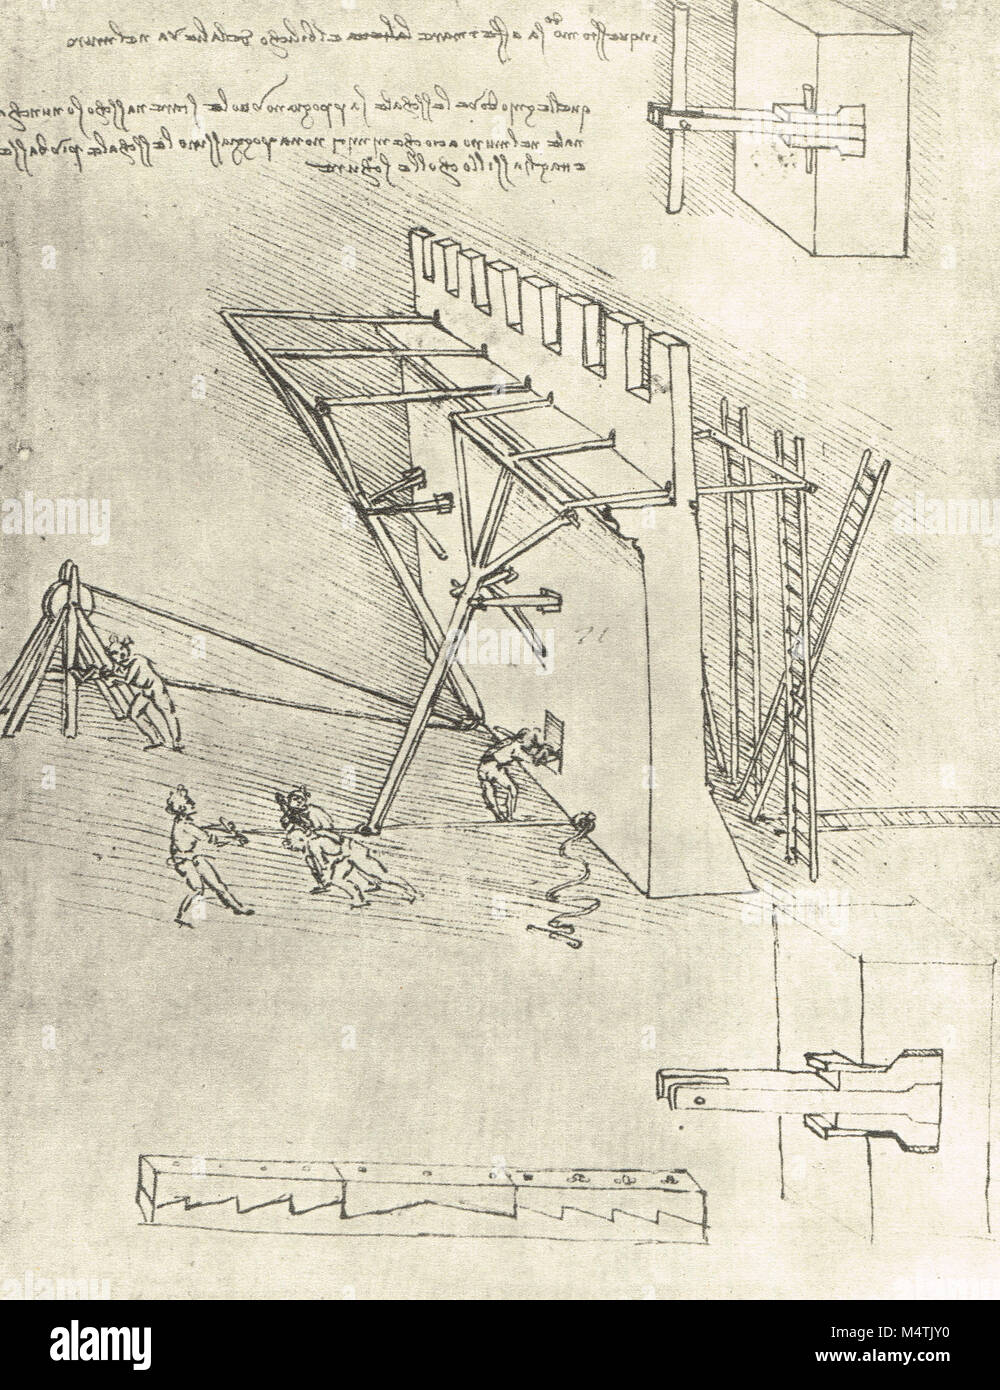 Device for repelling scaling ladders, drawn by Leonardo Da Vinci, circa 1475-80 - Stock Image